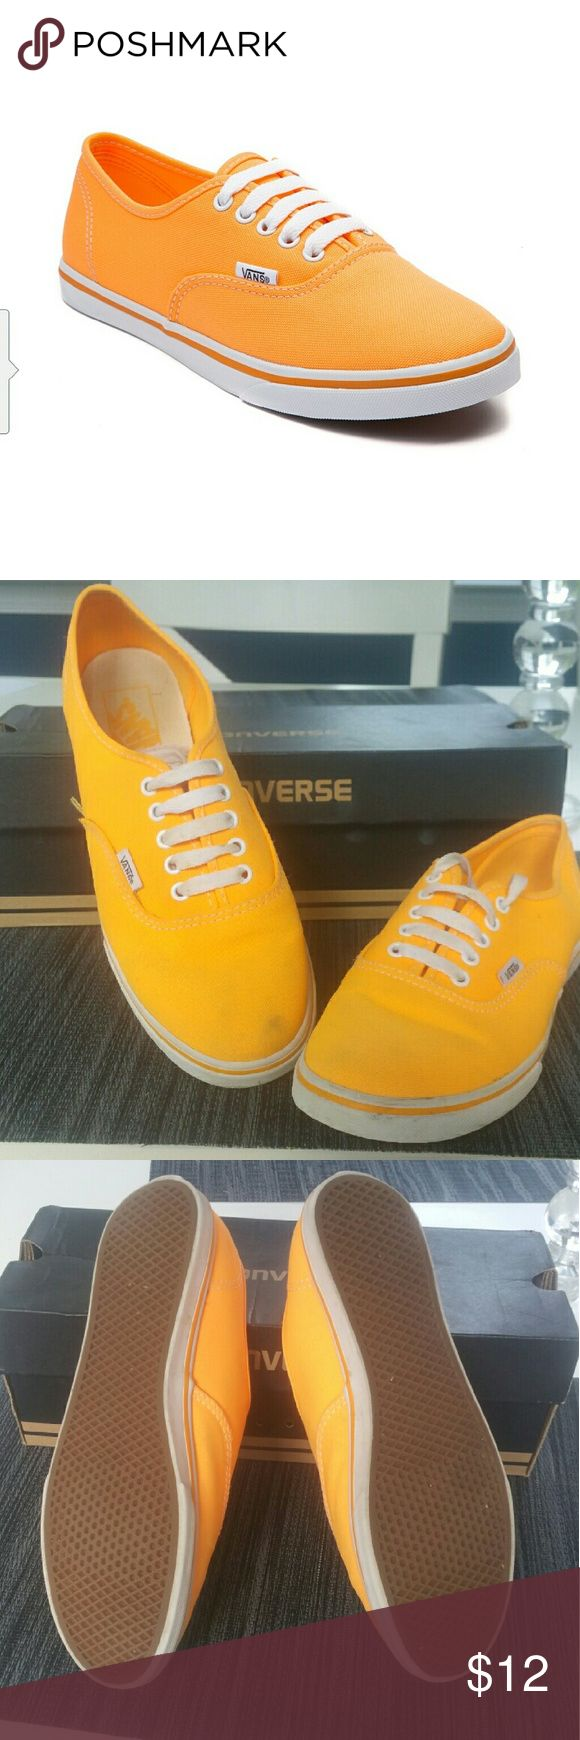 Vans Authentic Lo Pro Skate Shoe Vans Authentic Lo Pro Skate Shoe, Orange Size 9 in good condition Only some stains See pictures for details Vans Shoes Sneakers